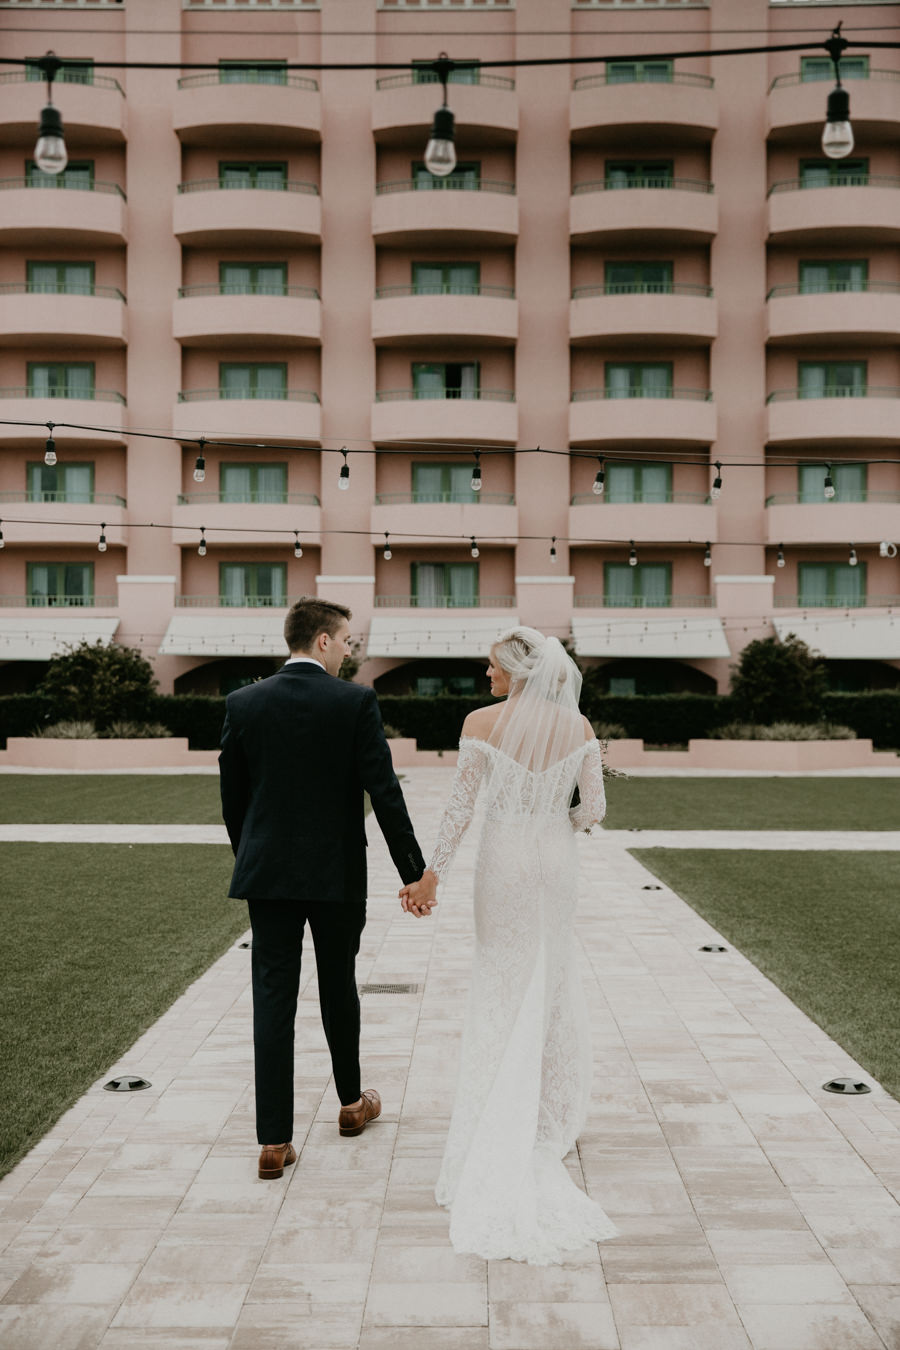 Neely rose gold boho wedding in st pete vinoy A and be Miami first baptist of st pete park shore grill Tampa Wedding Photographer -104.jpg